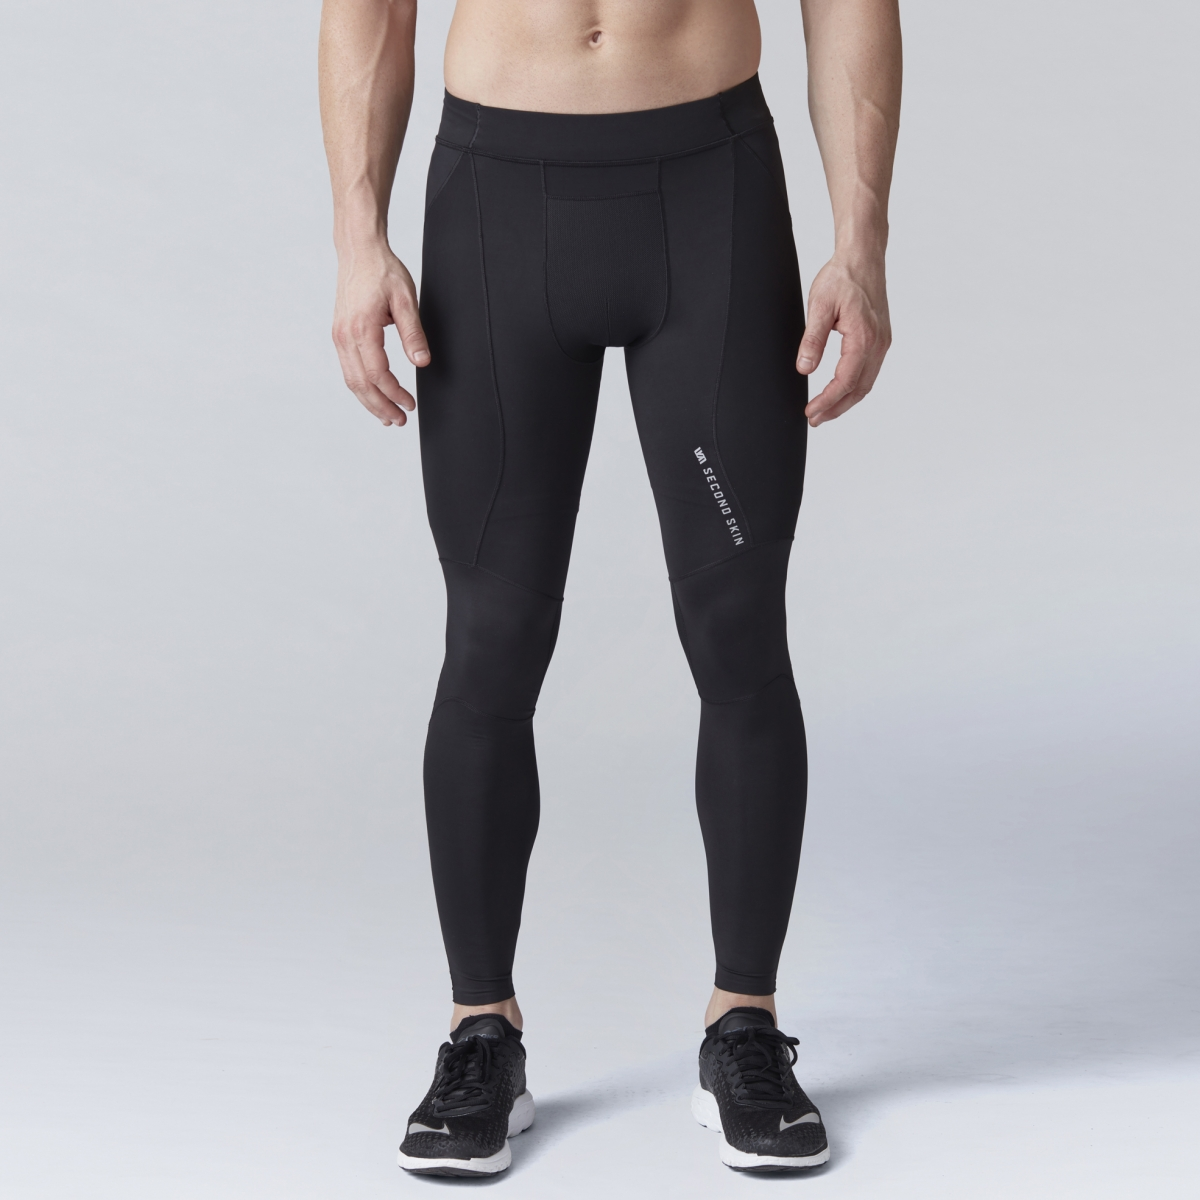 afc1538ad321e It's Time You Got a Pair of Gym Tights - Men's Journal